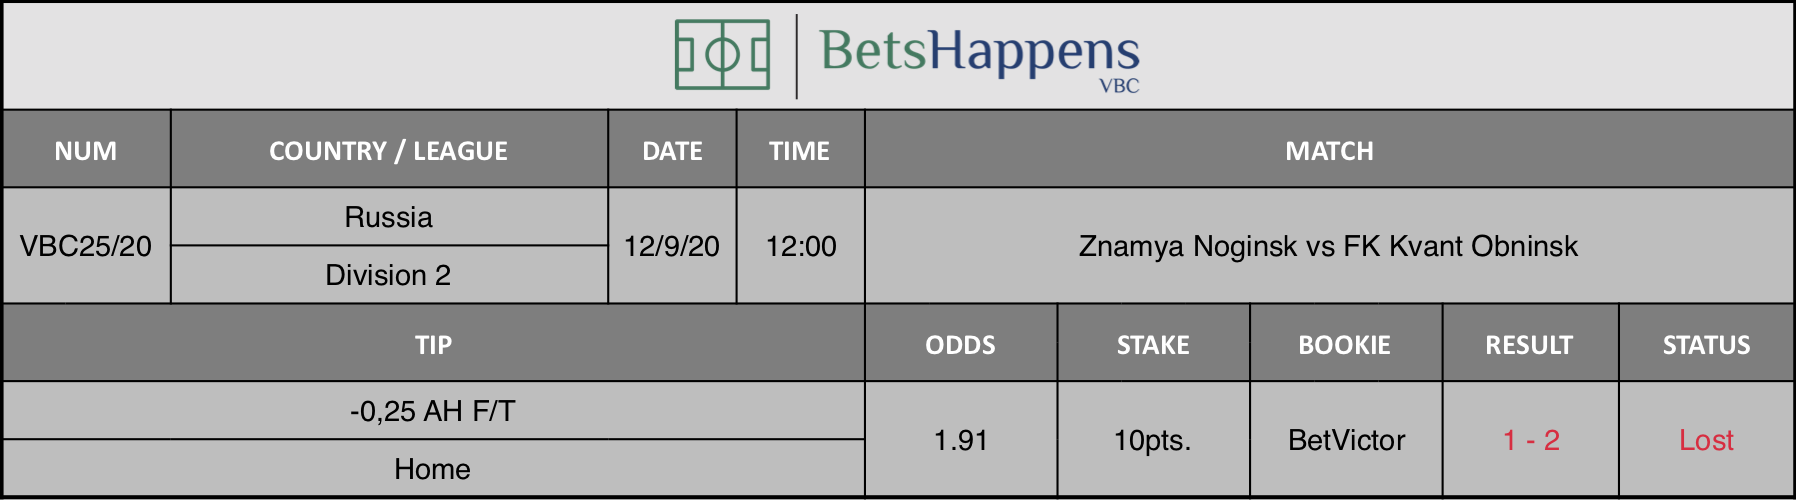 Results of our advice for the Znamya Noginsk vs FK Kvant Obninsk match in which -0.25 AH F / T Home is recommended.